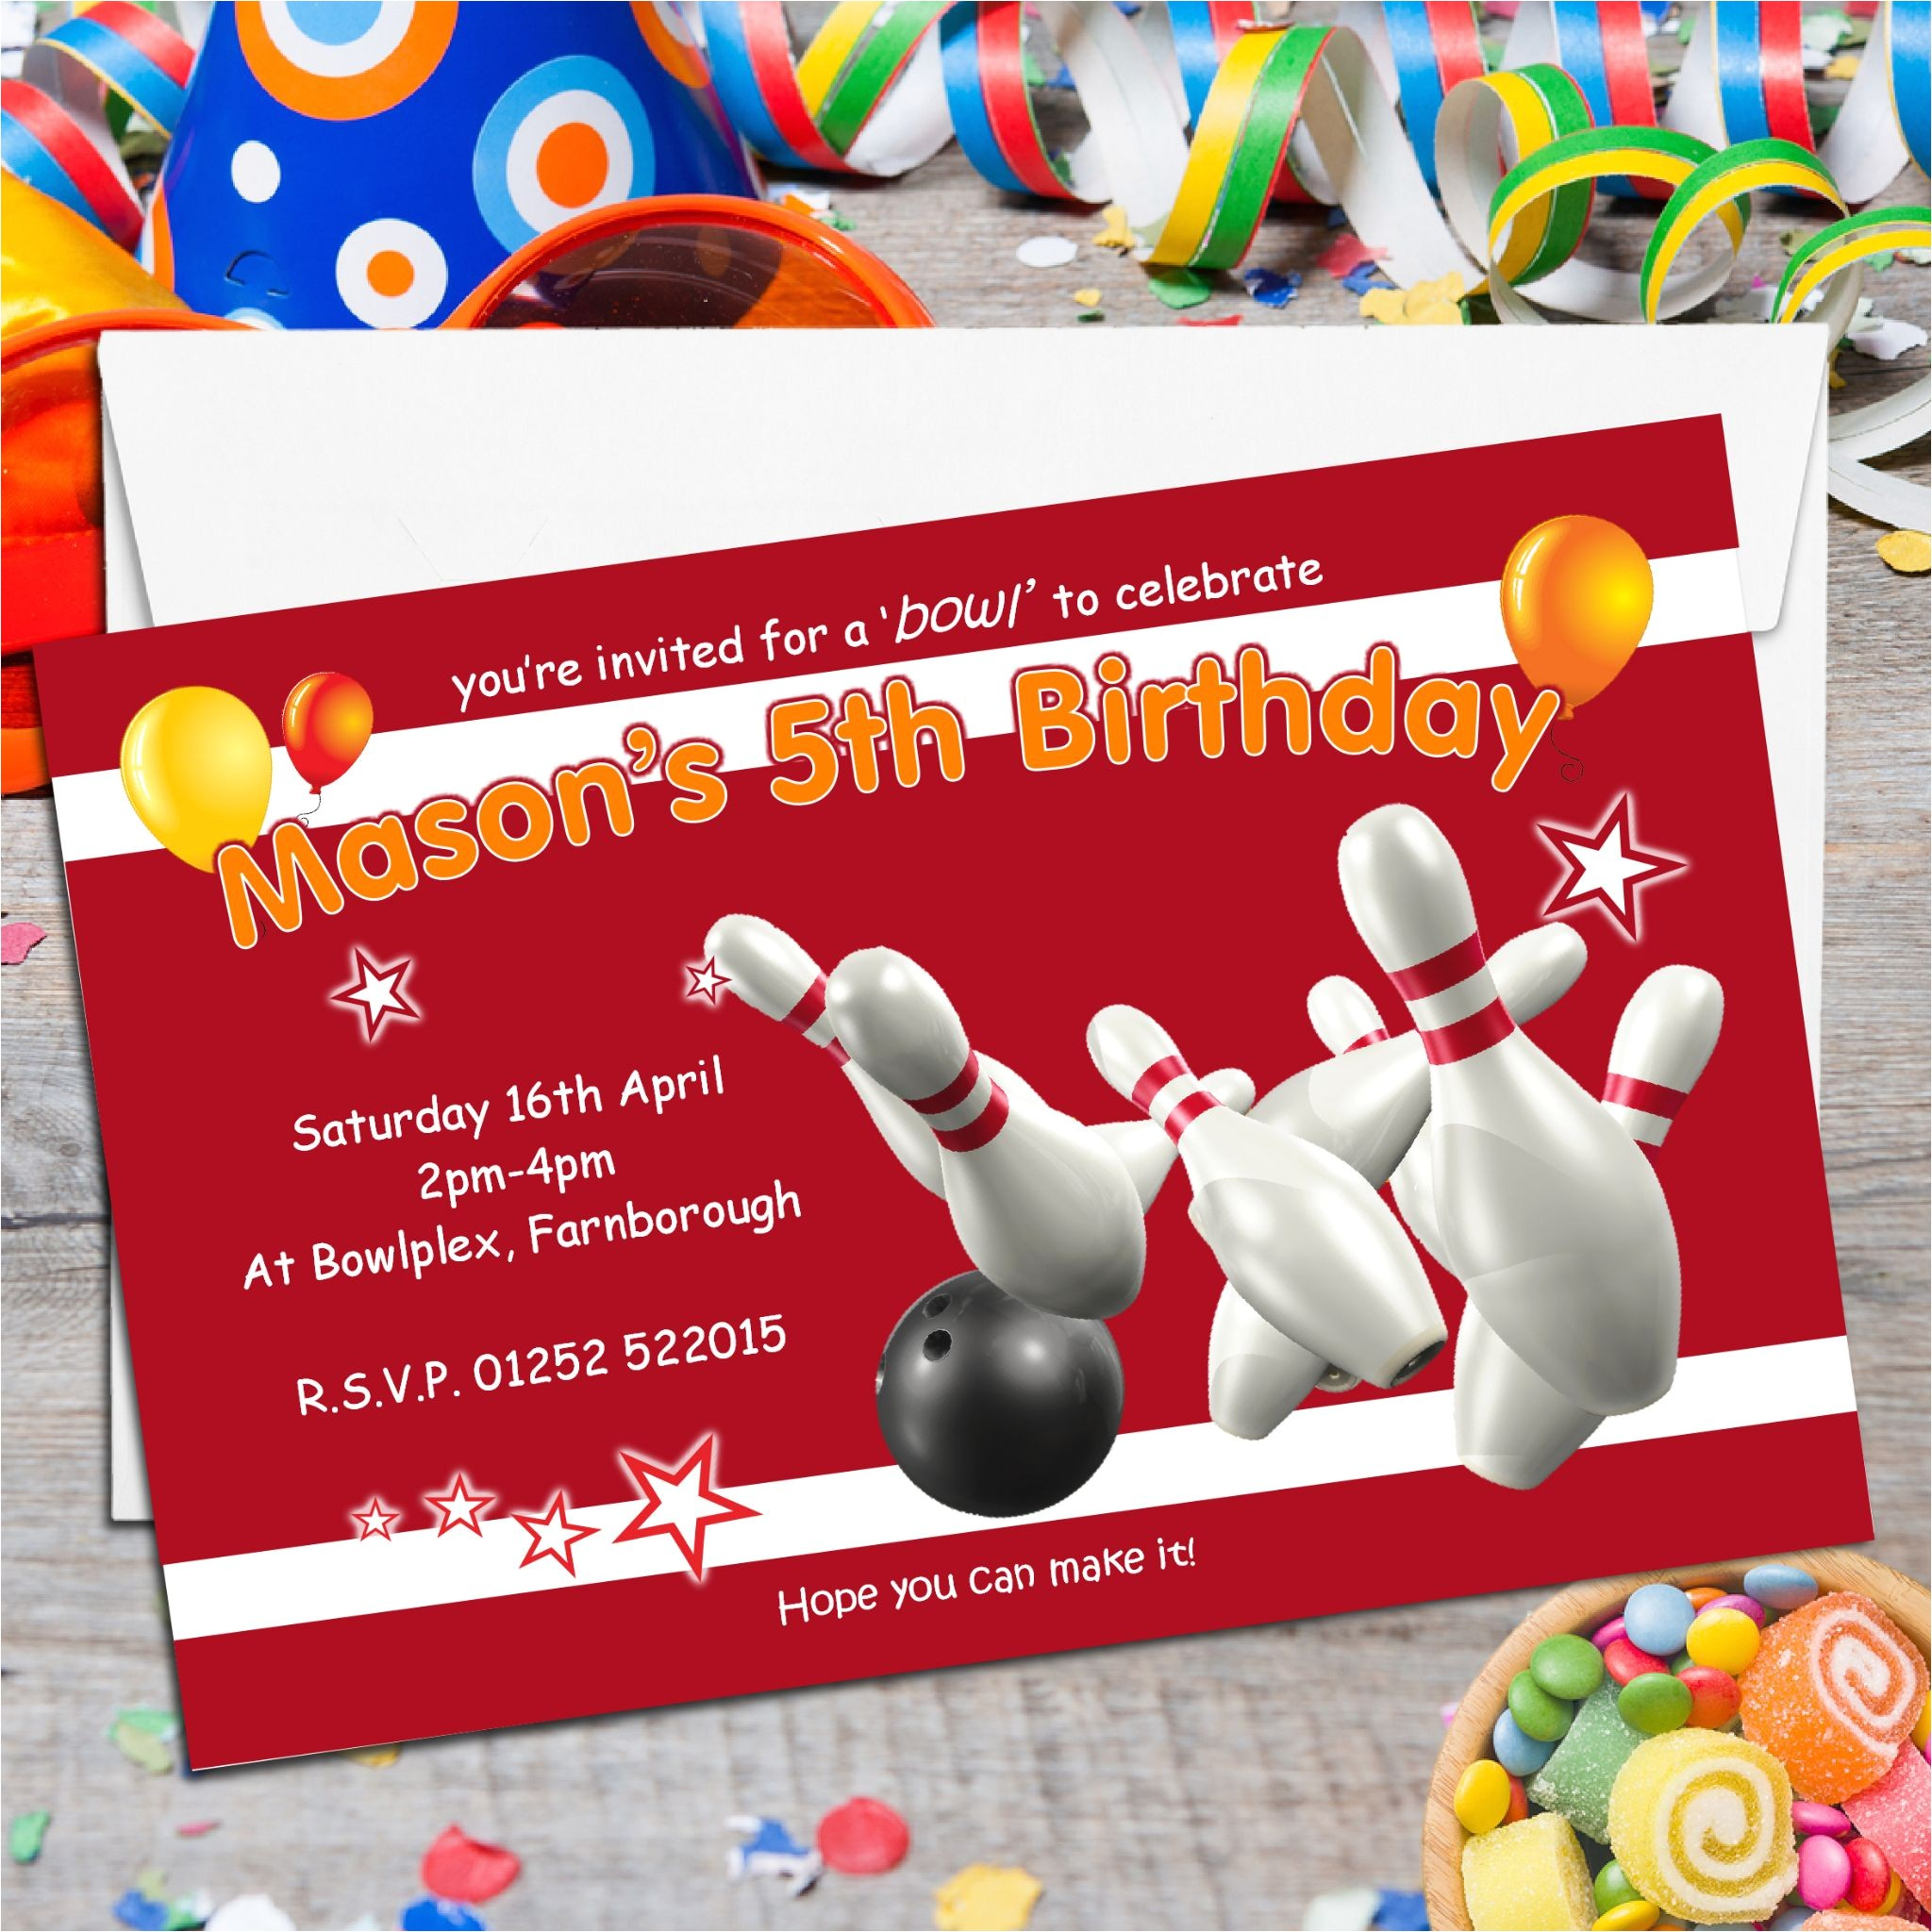 10 personalised ten pin bowling birthday party invitations n122 5537 p